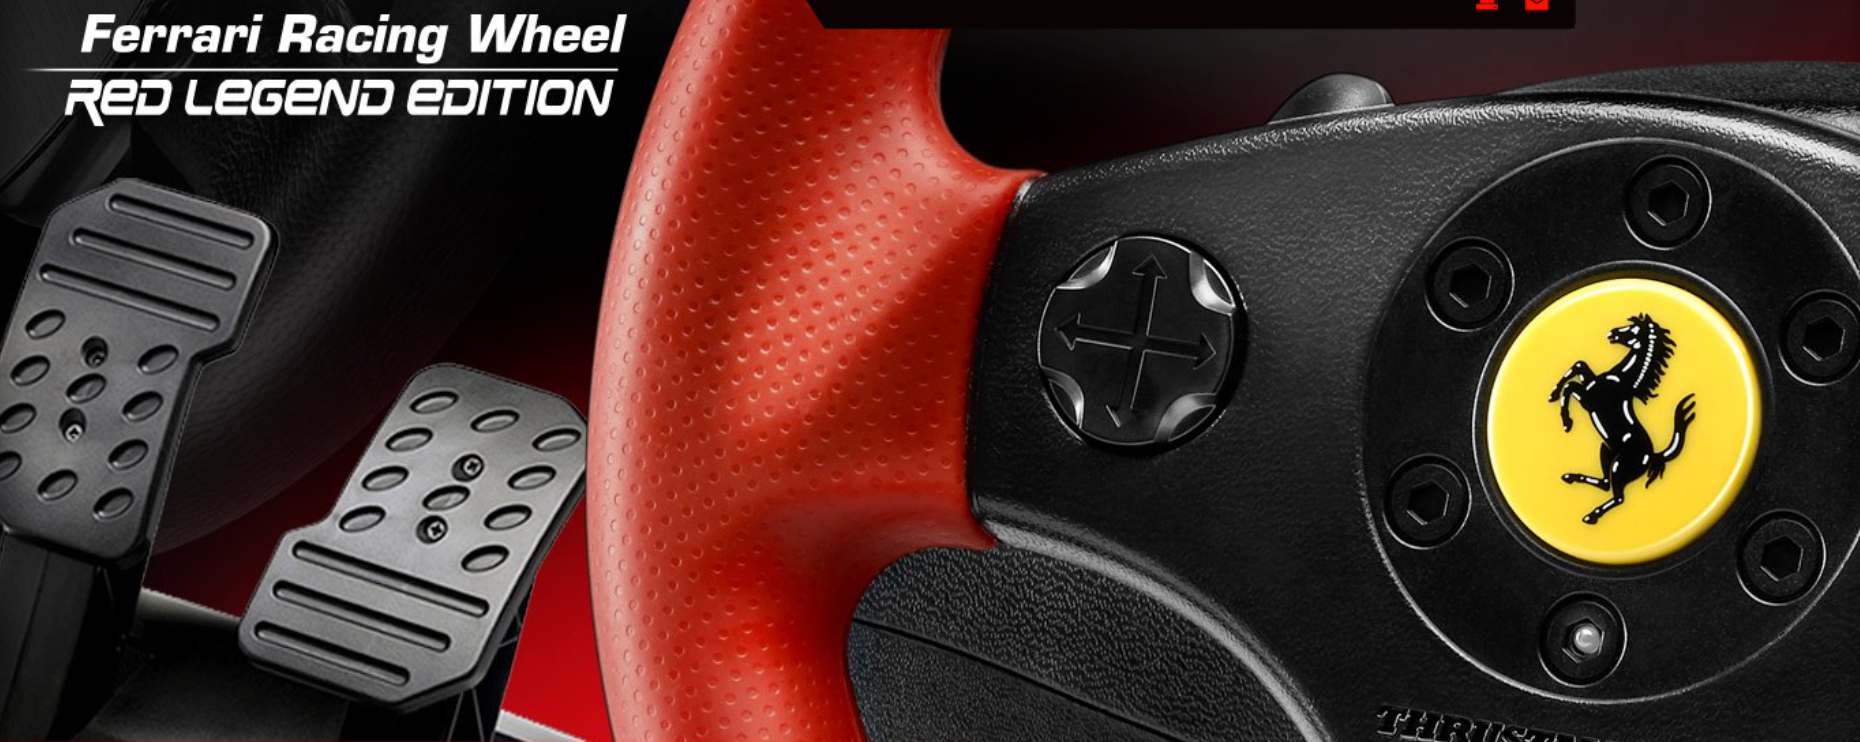 amazon com thrustmaster ferrari racing wheel red legend edition (pcfrom the manufacturer the exclusive \u0027red legend\u0027 edition of the best selling racing wheel